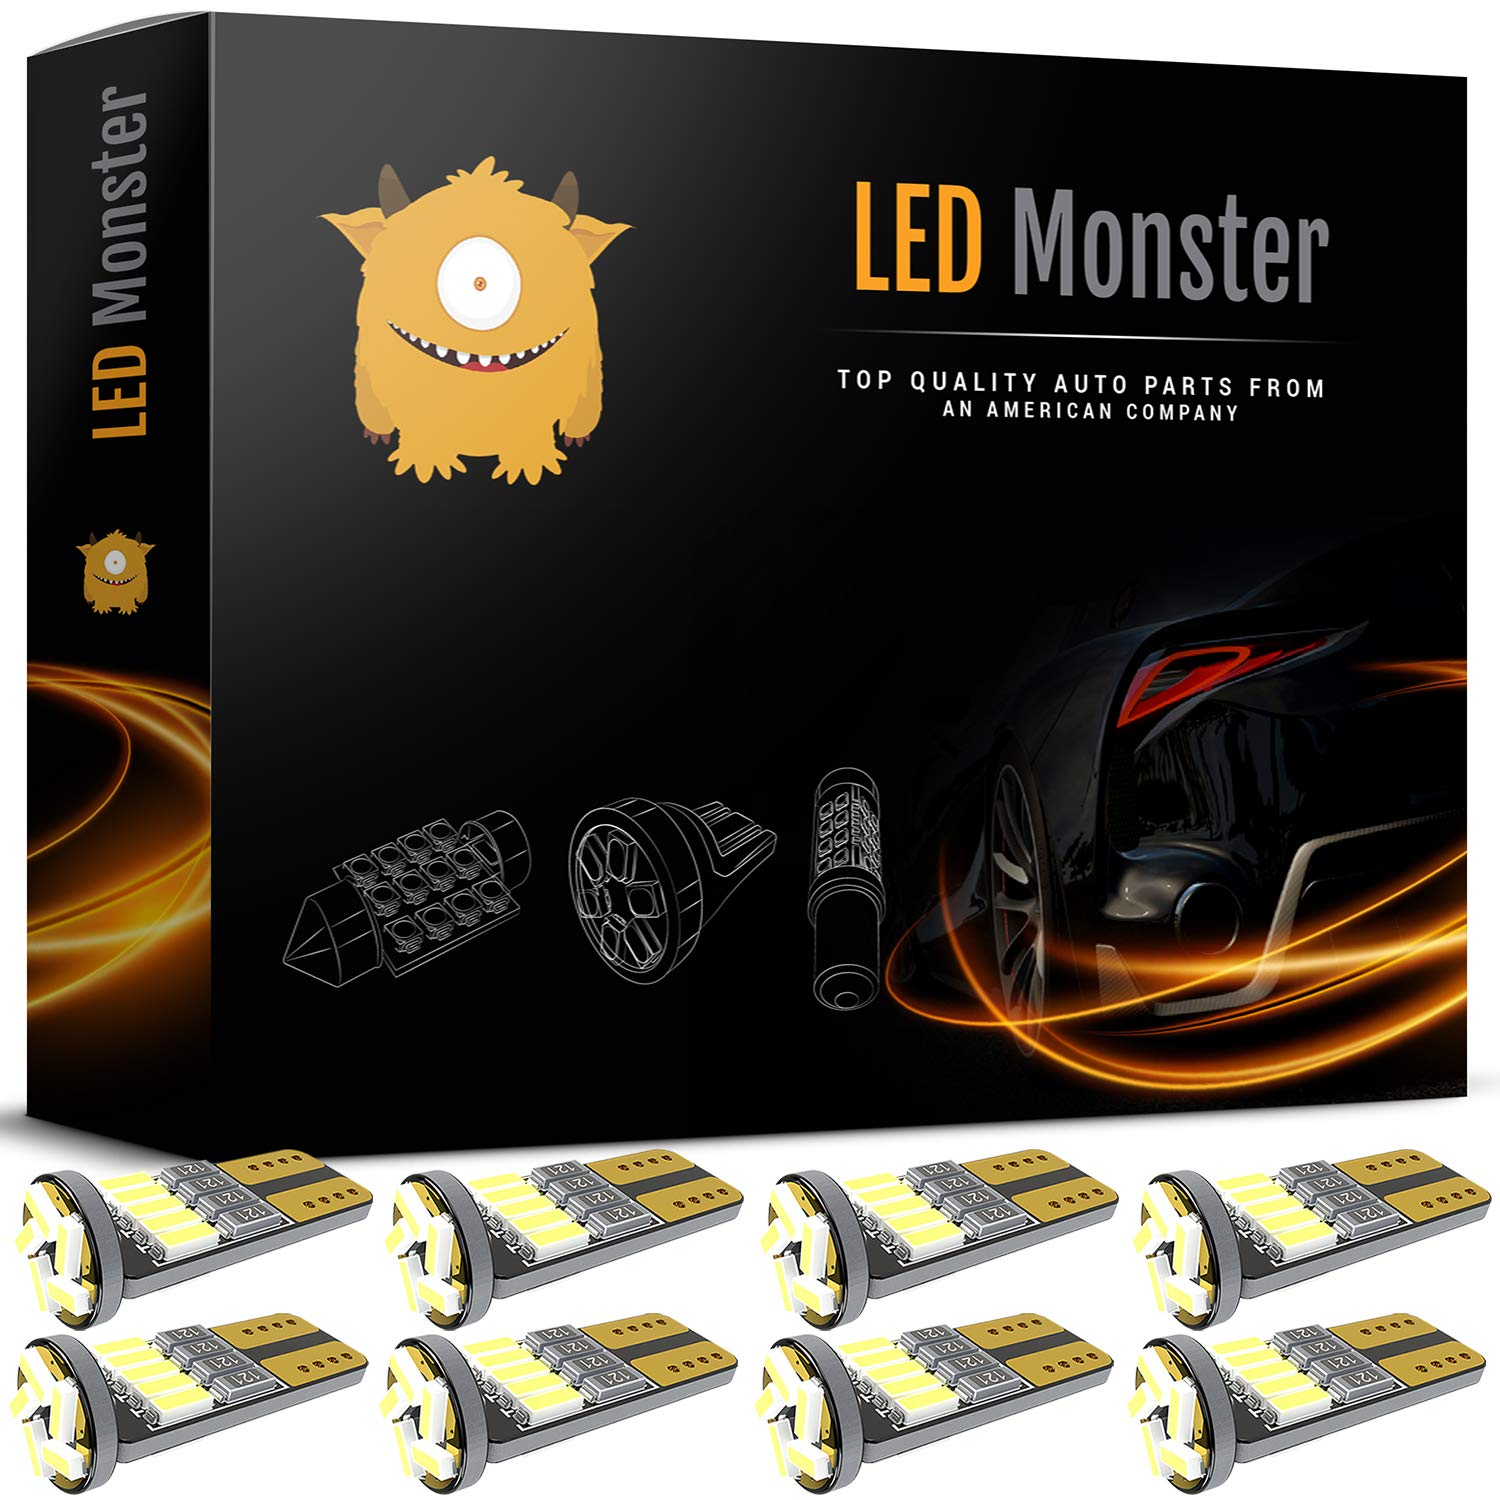 LED Monster 8pcs T10 Wedge Best Value Super Bright High Power 3014 15-SMD 194 168 2825 W5W White LED Bulb Lamp for Car Truck Interior Dome Map Door Courtesy License Plate Lights by LED Monster